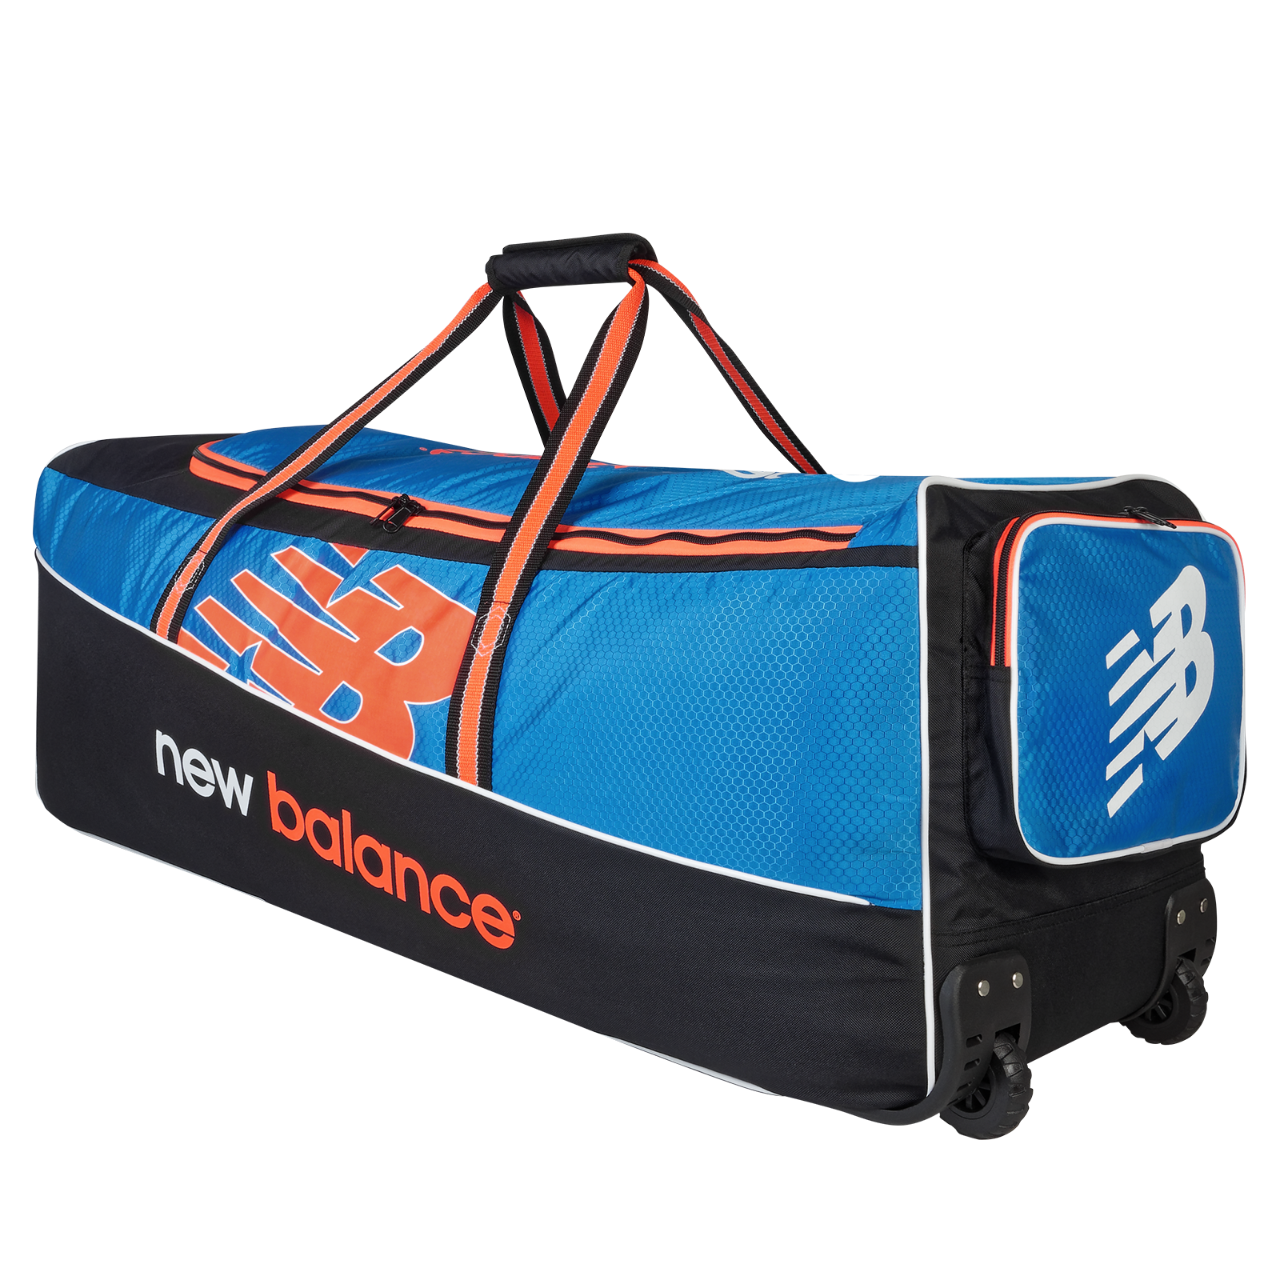 2020 New Balance DC 680 Wheelie Cricket Bag